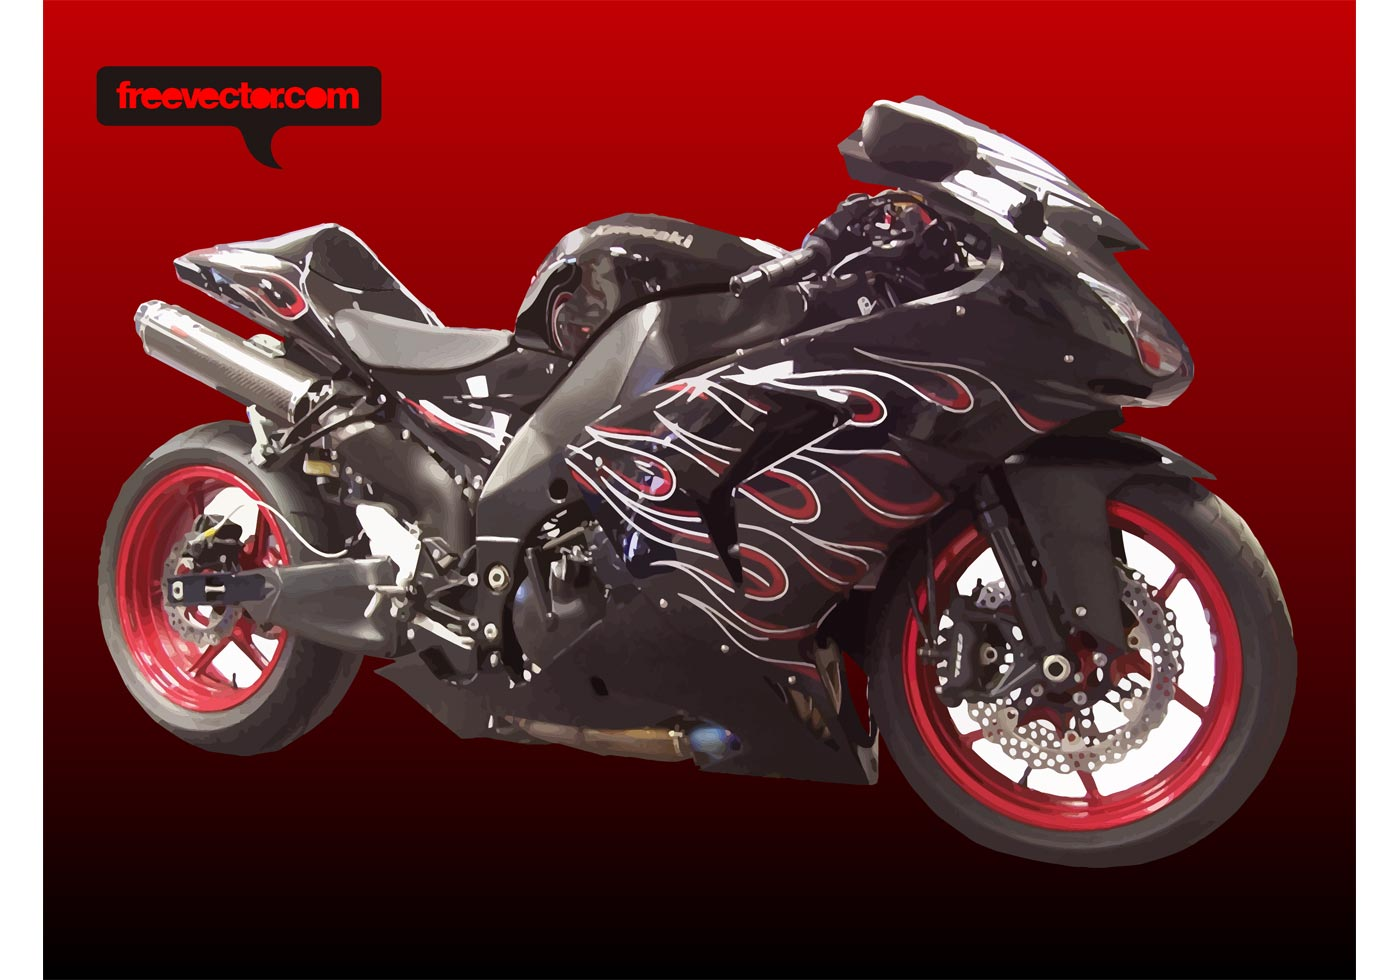 vector free download motorcycle - photo #41